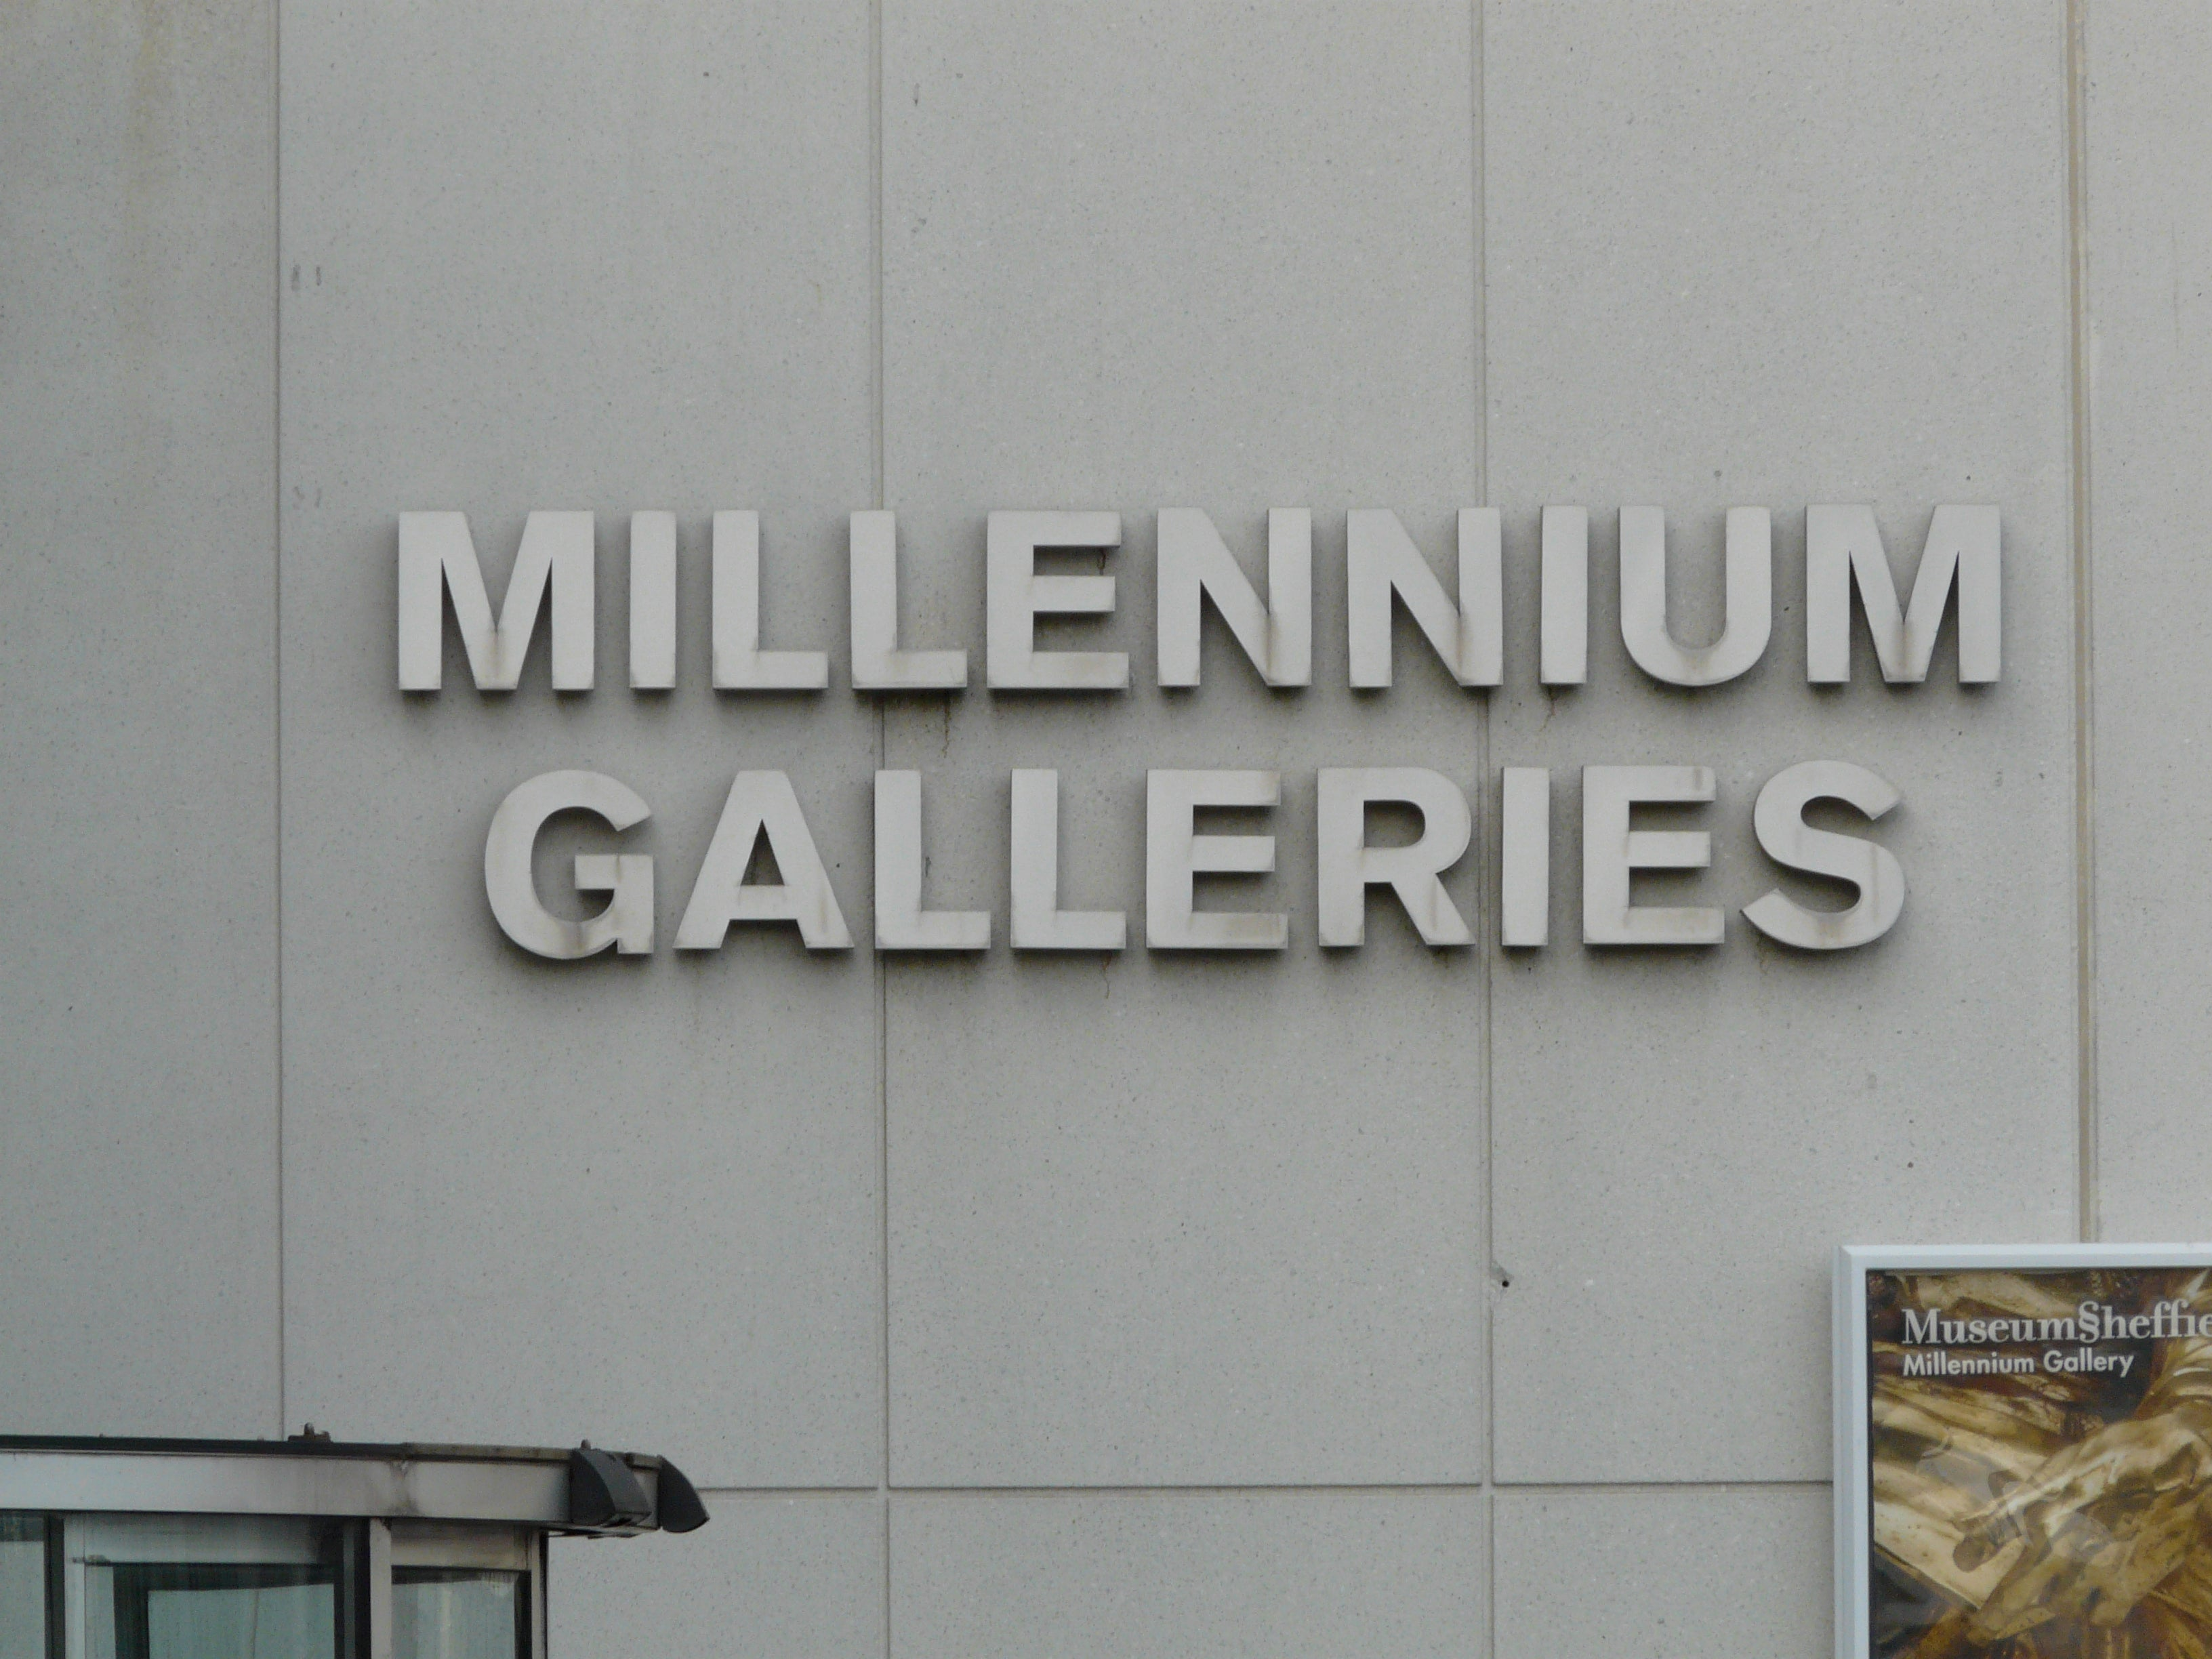 Pared en Millennium Gallery